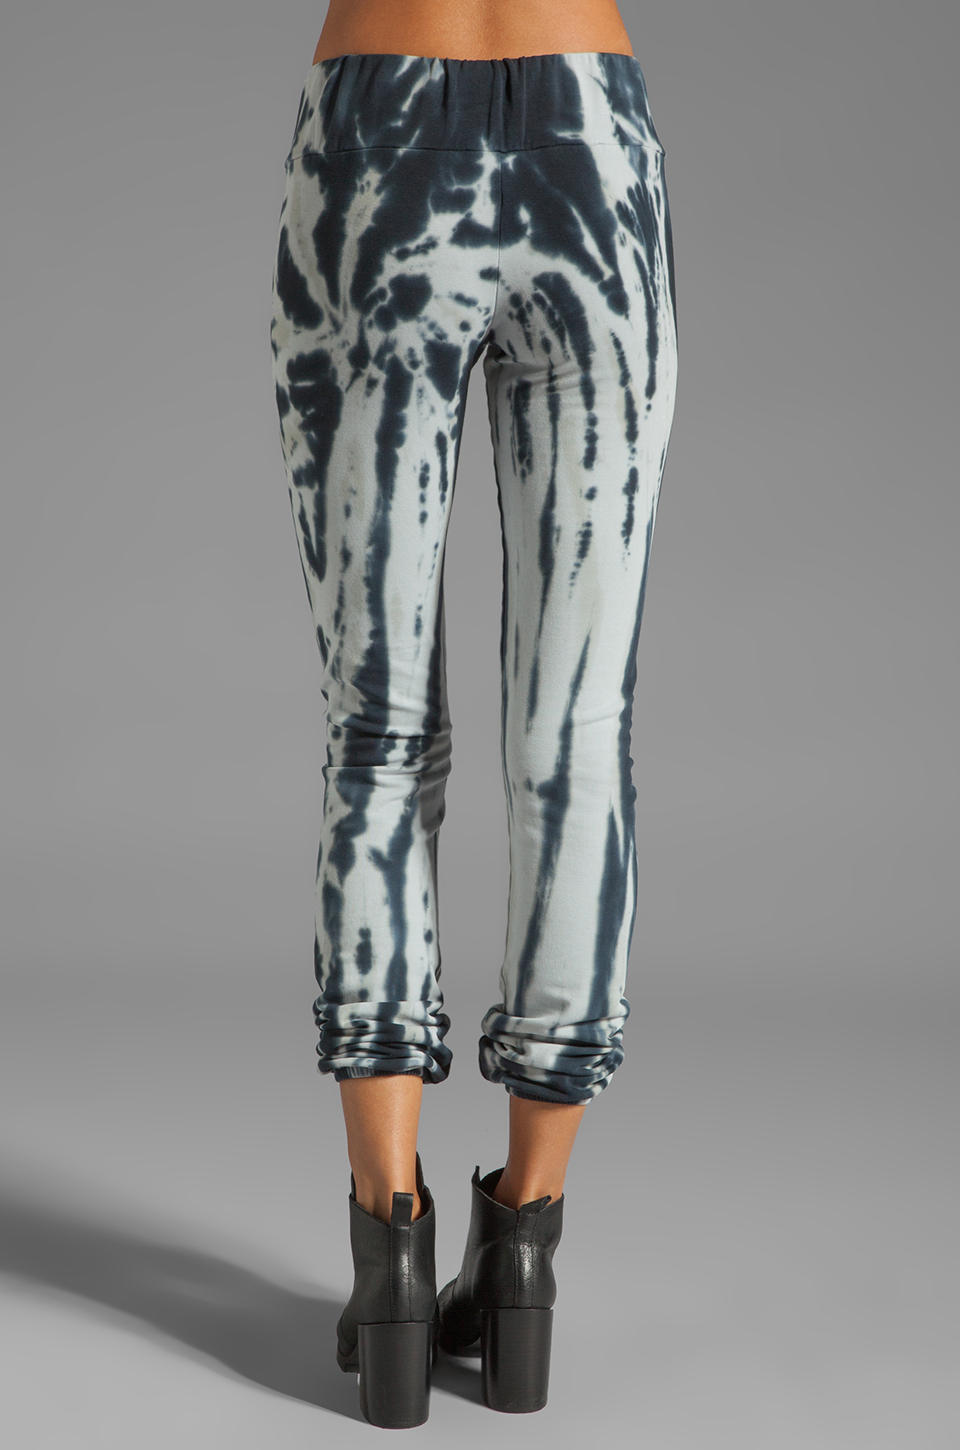 Blue Life Fitted Sweat Pant in Black/White Tie Dye